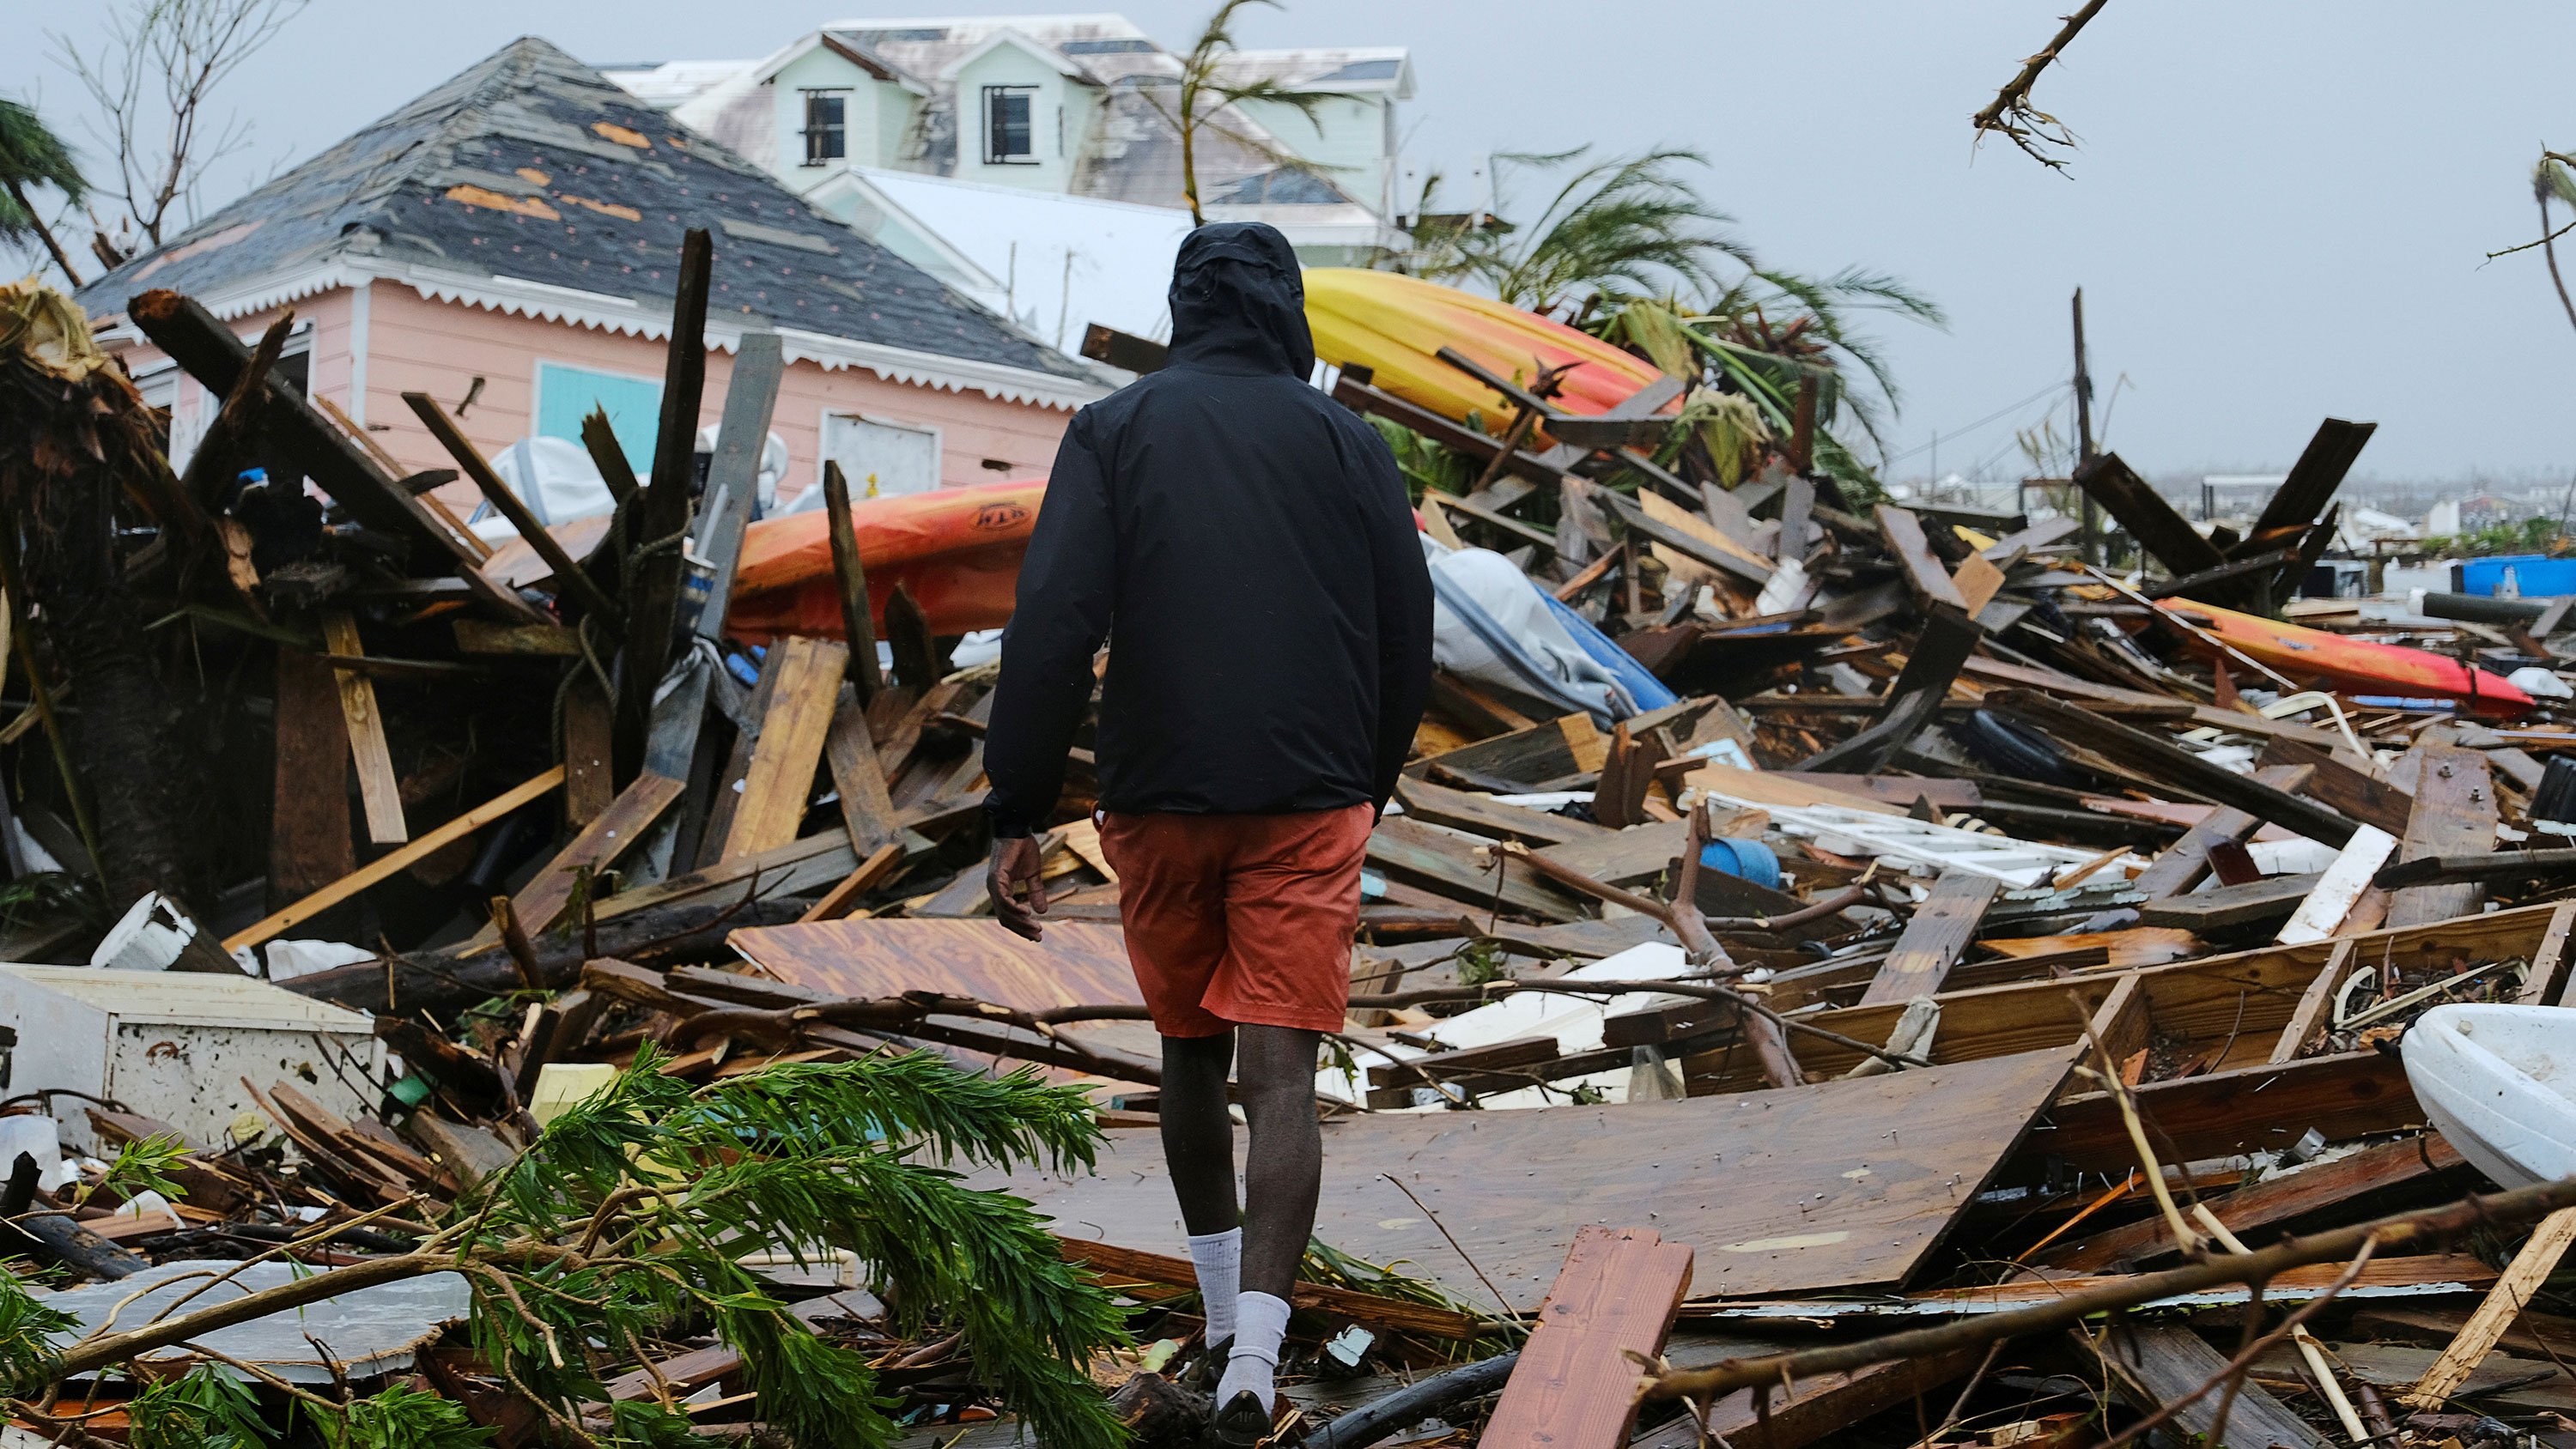 A man walks through the rubble in the aftermath of Hurricane Dorian on the Great Abaco island town of Marsh Harbour, Bahamas, September 2, 2019. Picture taken September 2, 2019. REUTERS/Dante Carrer